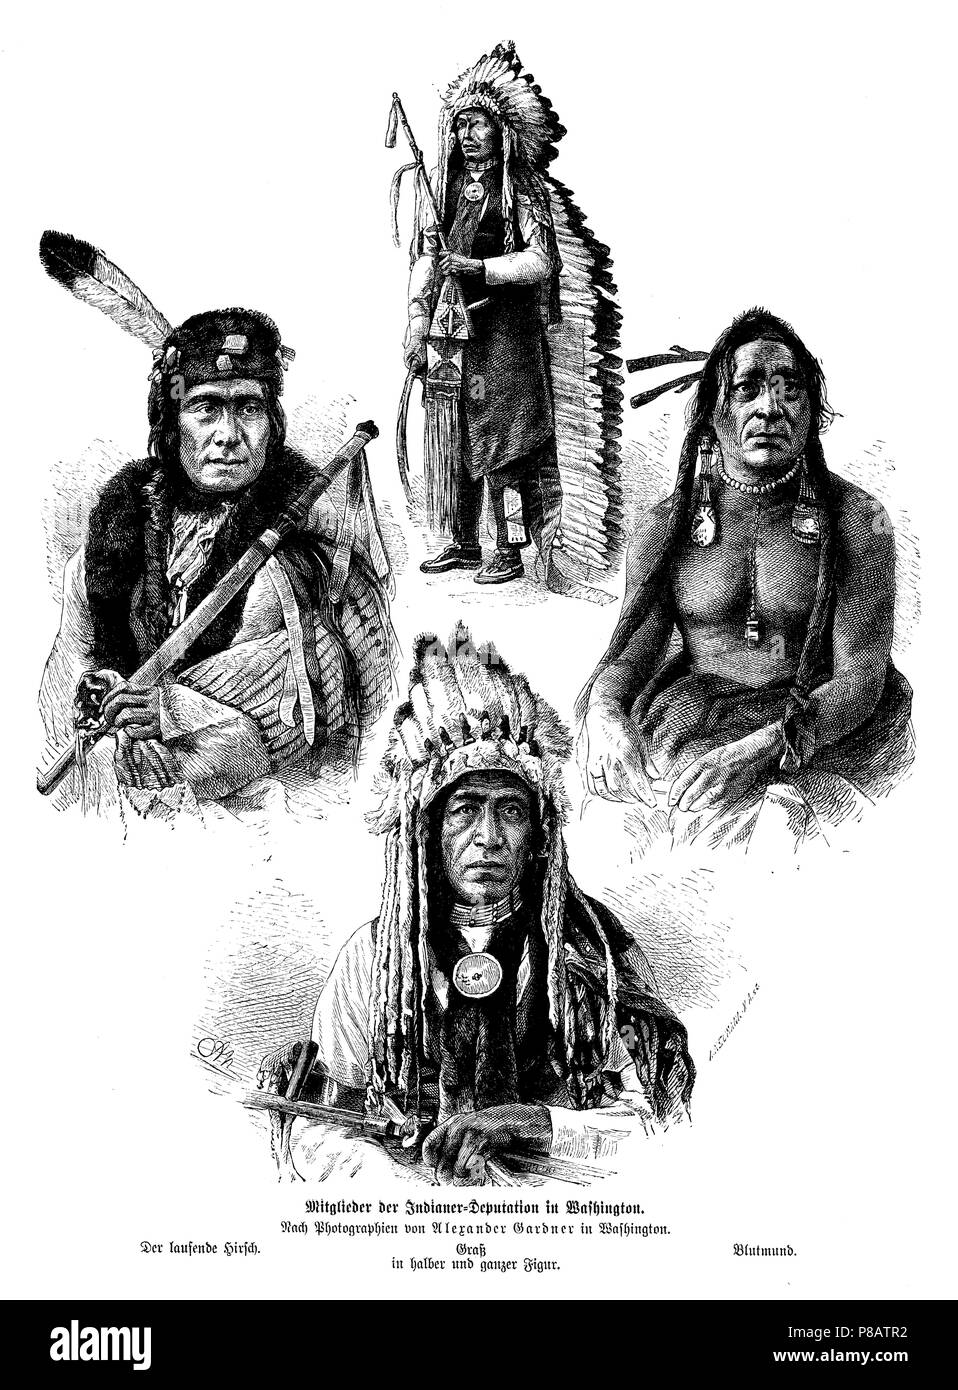 Members of the Indian Deputation in Washington. The running stag (left), grass (middle, top and bottom), blood mouth (right). After photographs of Alexander Gardner in Washington, A Neumann und A N - Stock Image